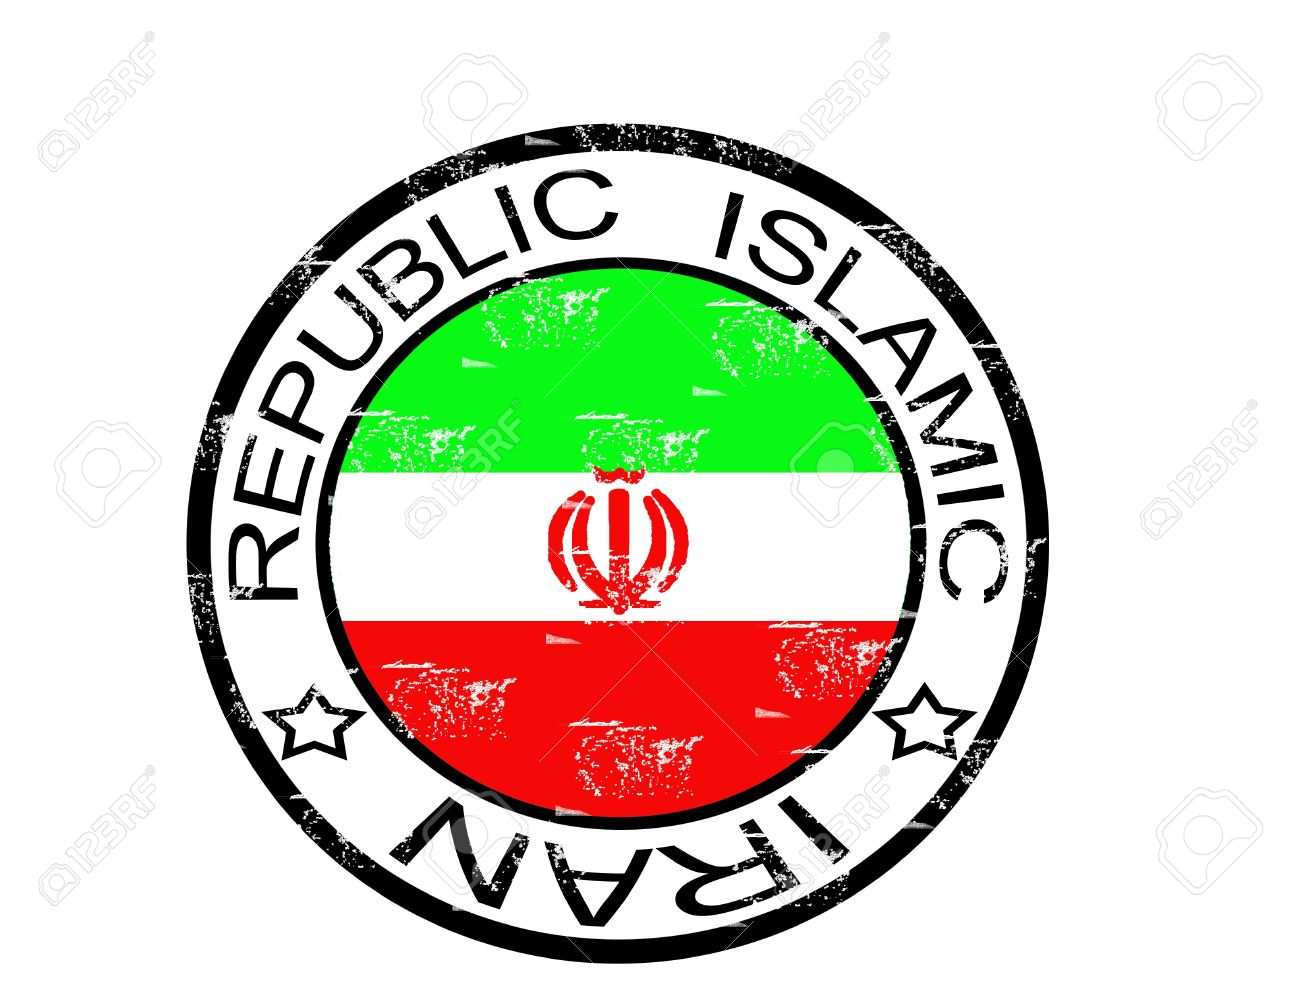 Grunge Stamp With The Flag And The Words Republic Islamic Iran.